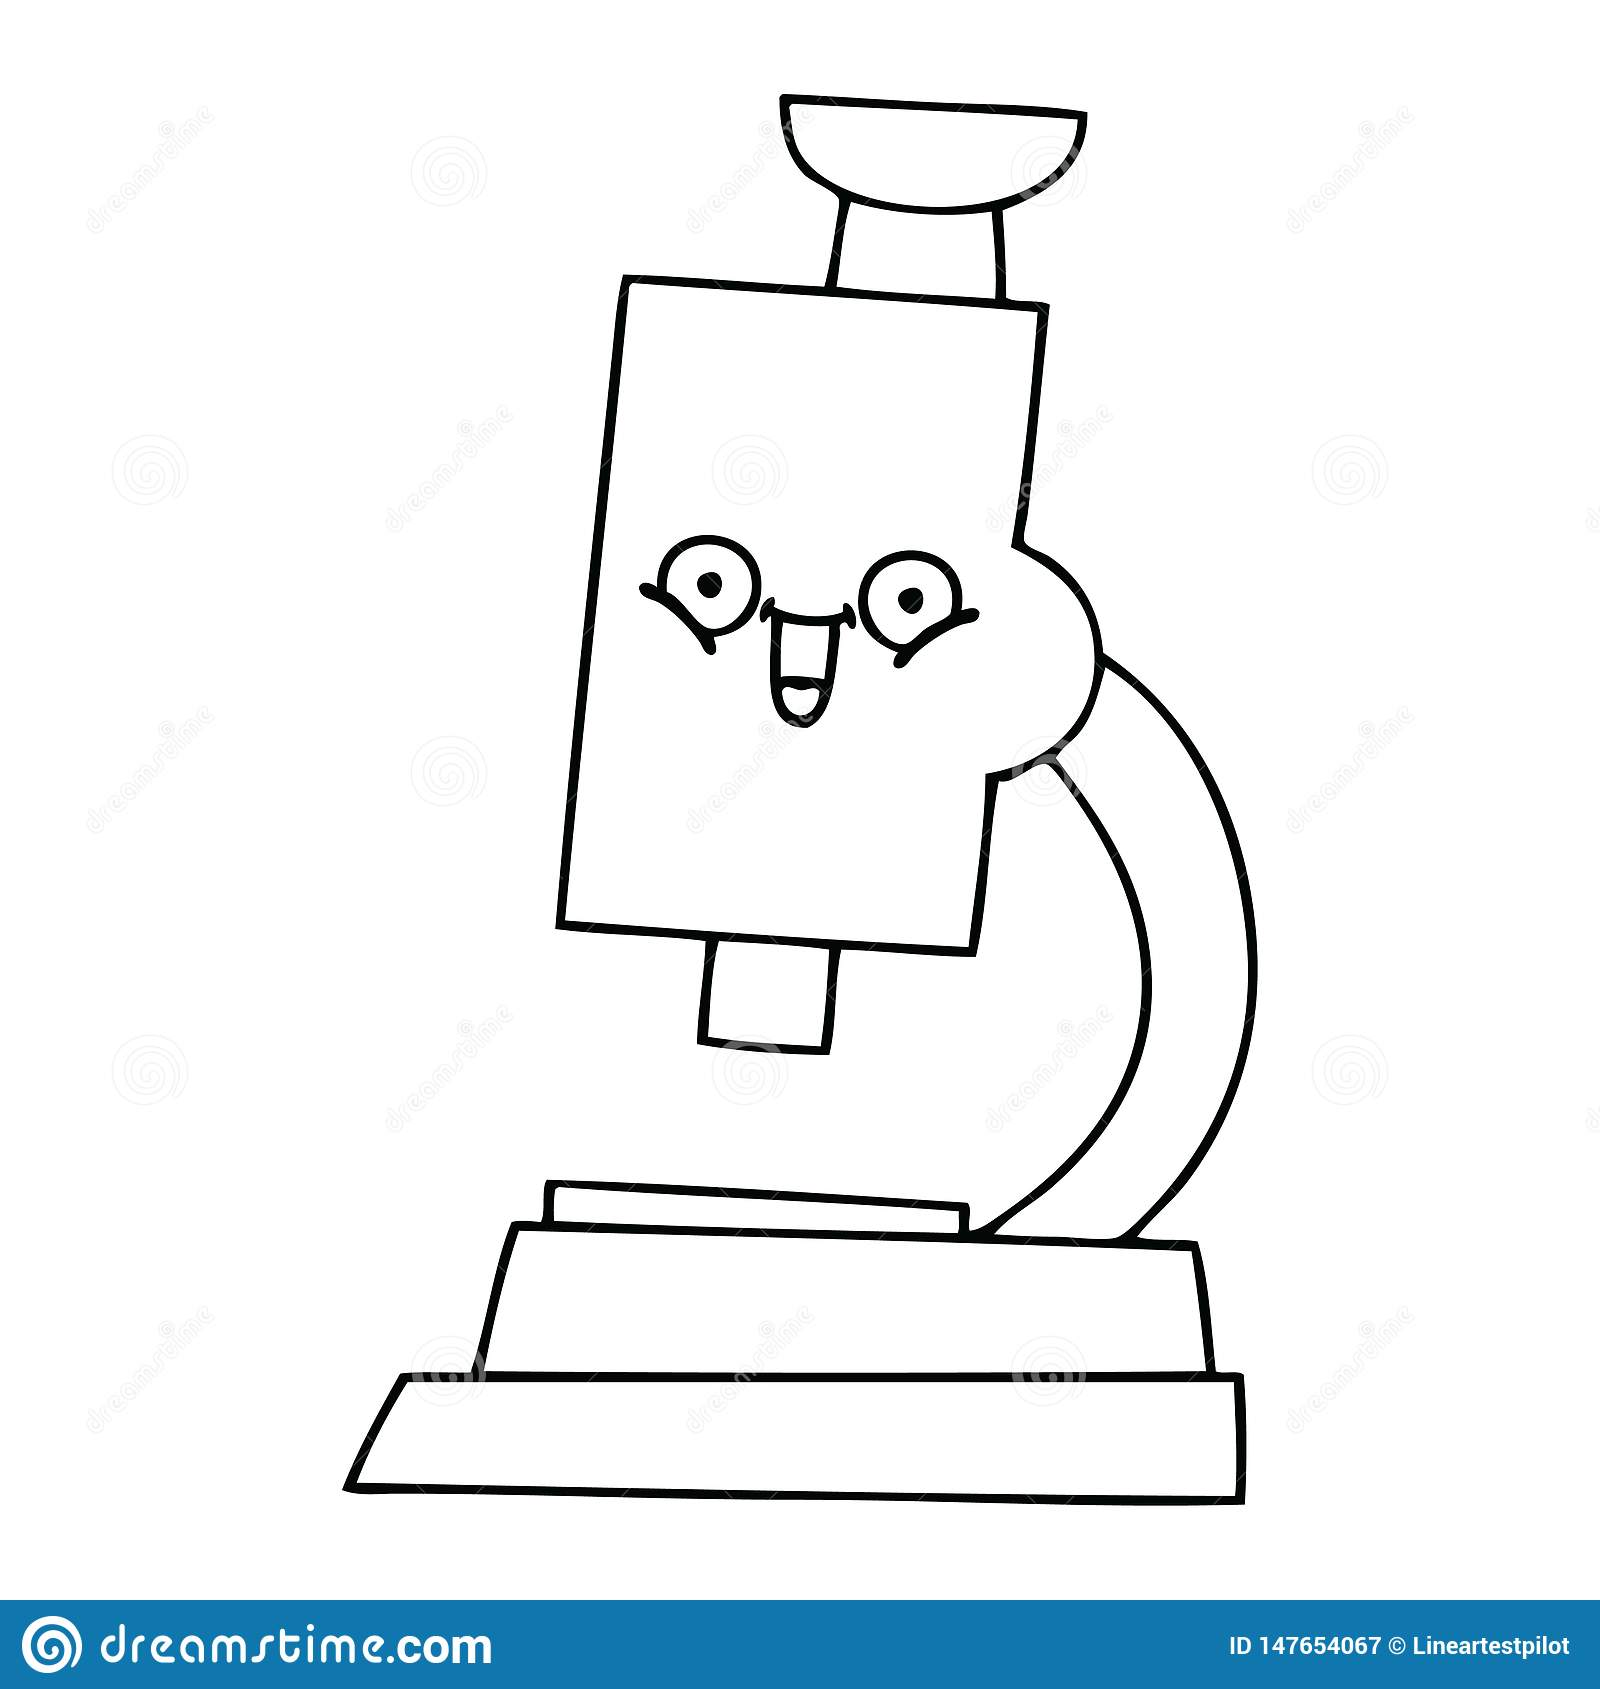 line drawing cartoon microscope stock vector illustration of cartoon magnifier 147654067 dreamstime com